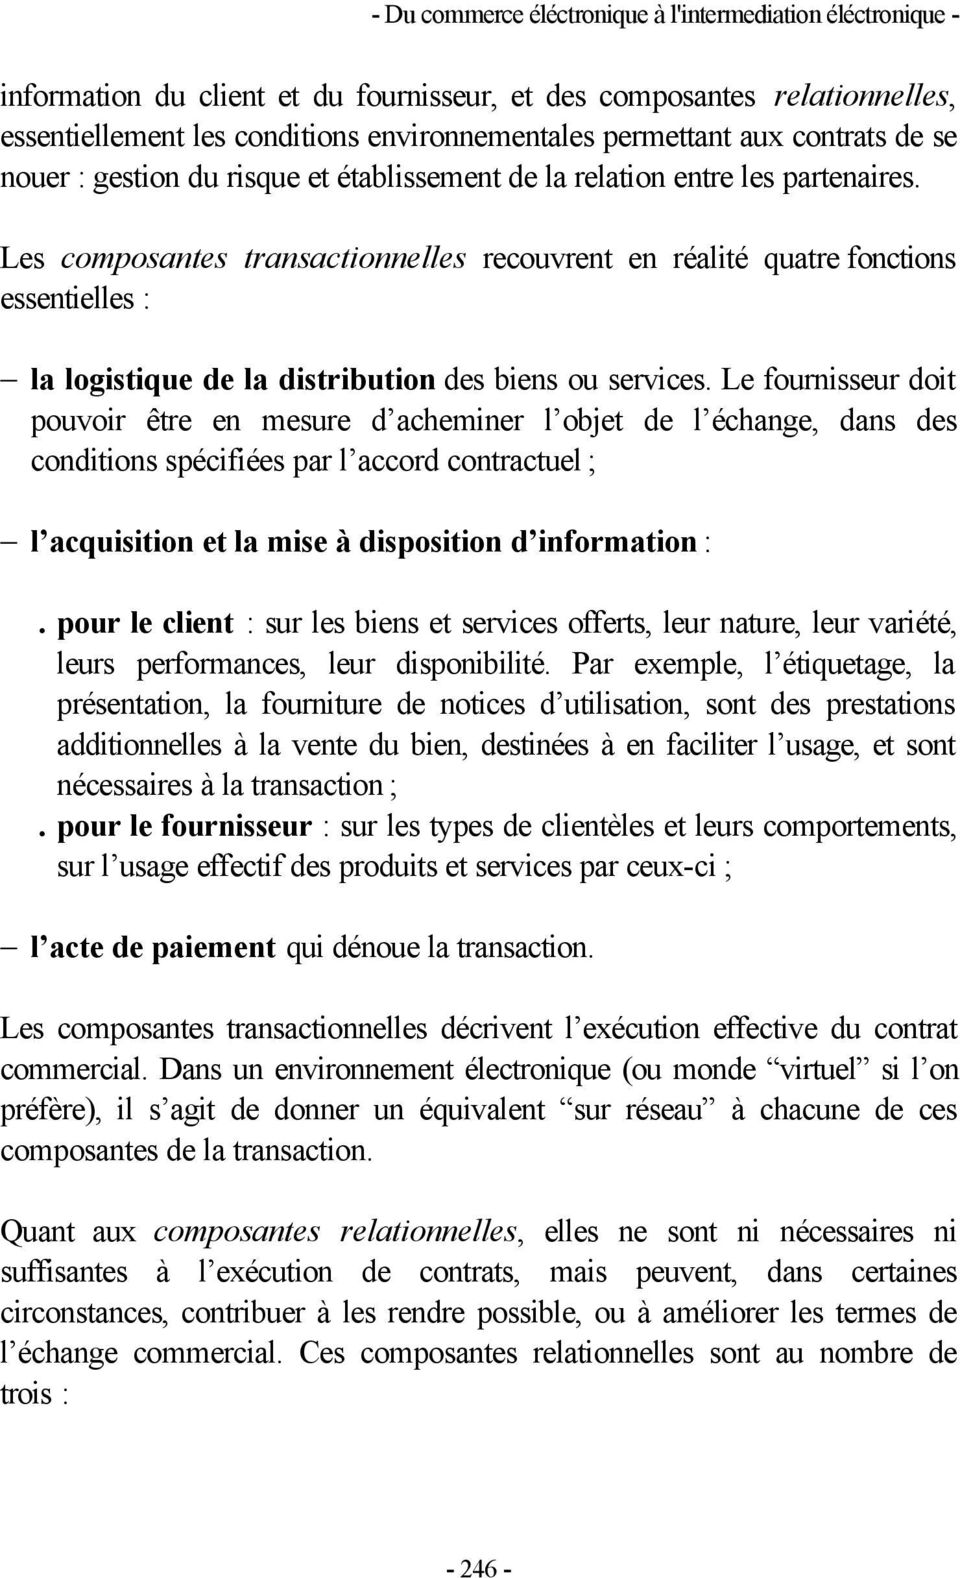 Le fournisseur doit pouvoir être en mesure d acheminer l objet de l échange, dans des conditions spécifiées par l accord contractuel ; l acquisition et la mise à disposition d information :.